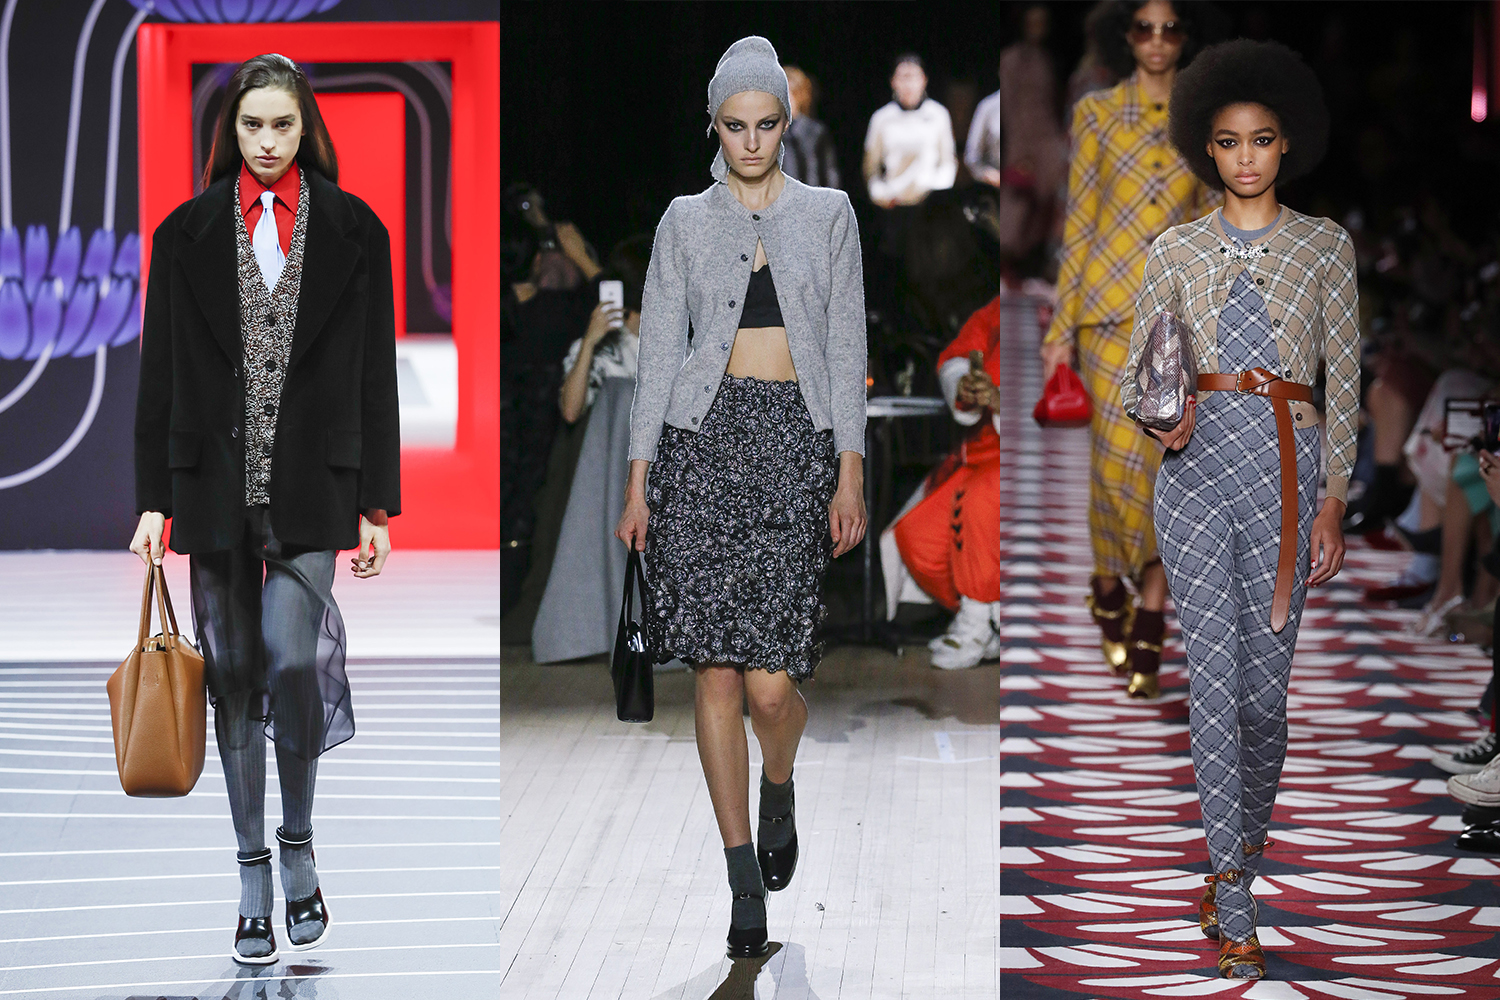 Entwined in the resurgence of ladylike style, models have been wrapped in cardigans this season.